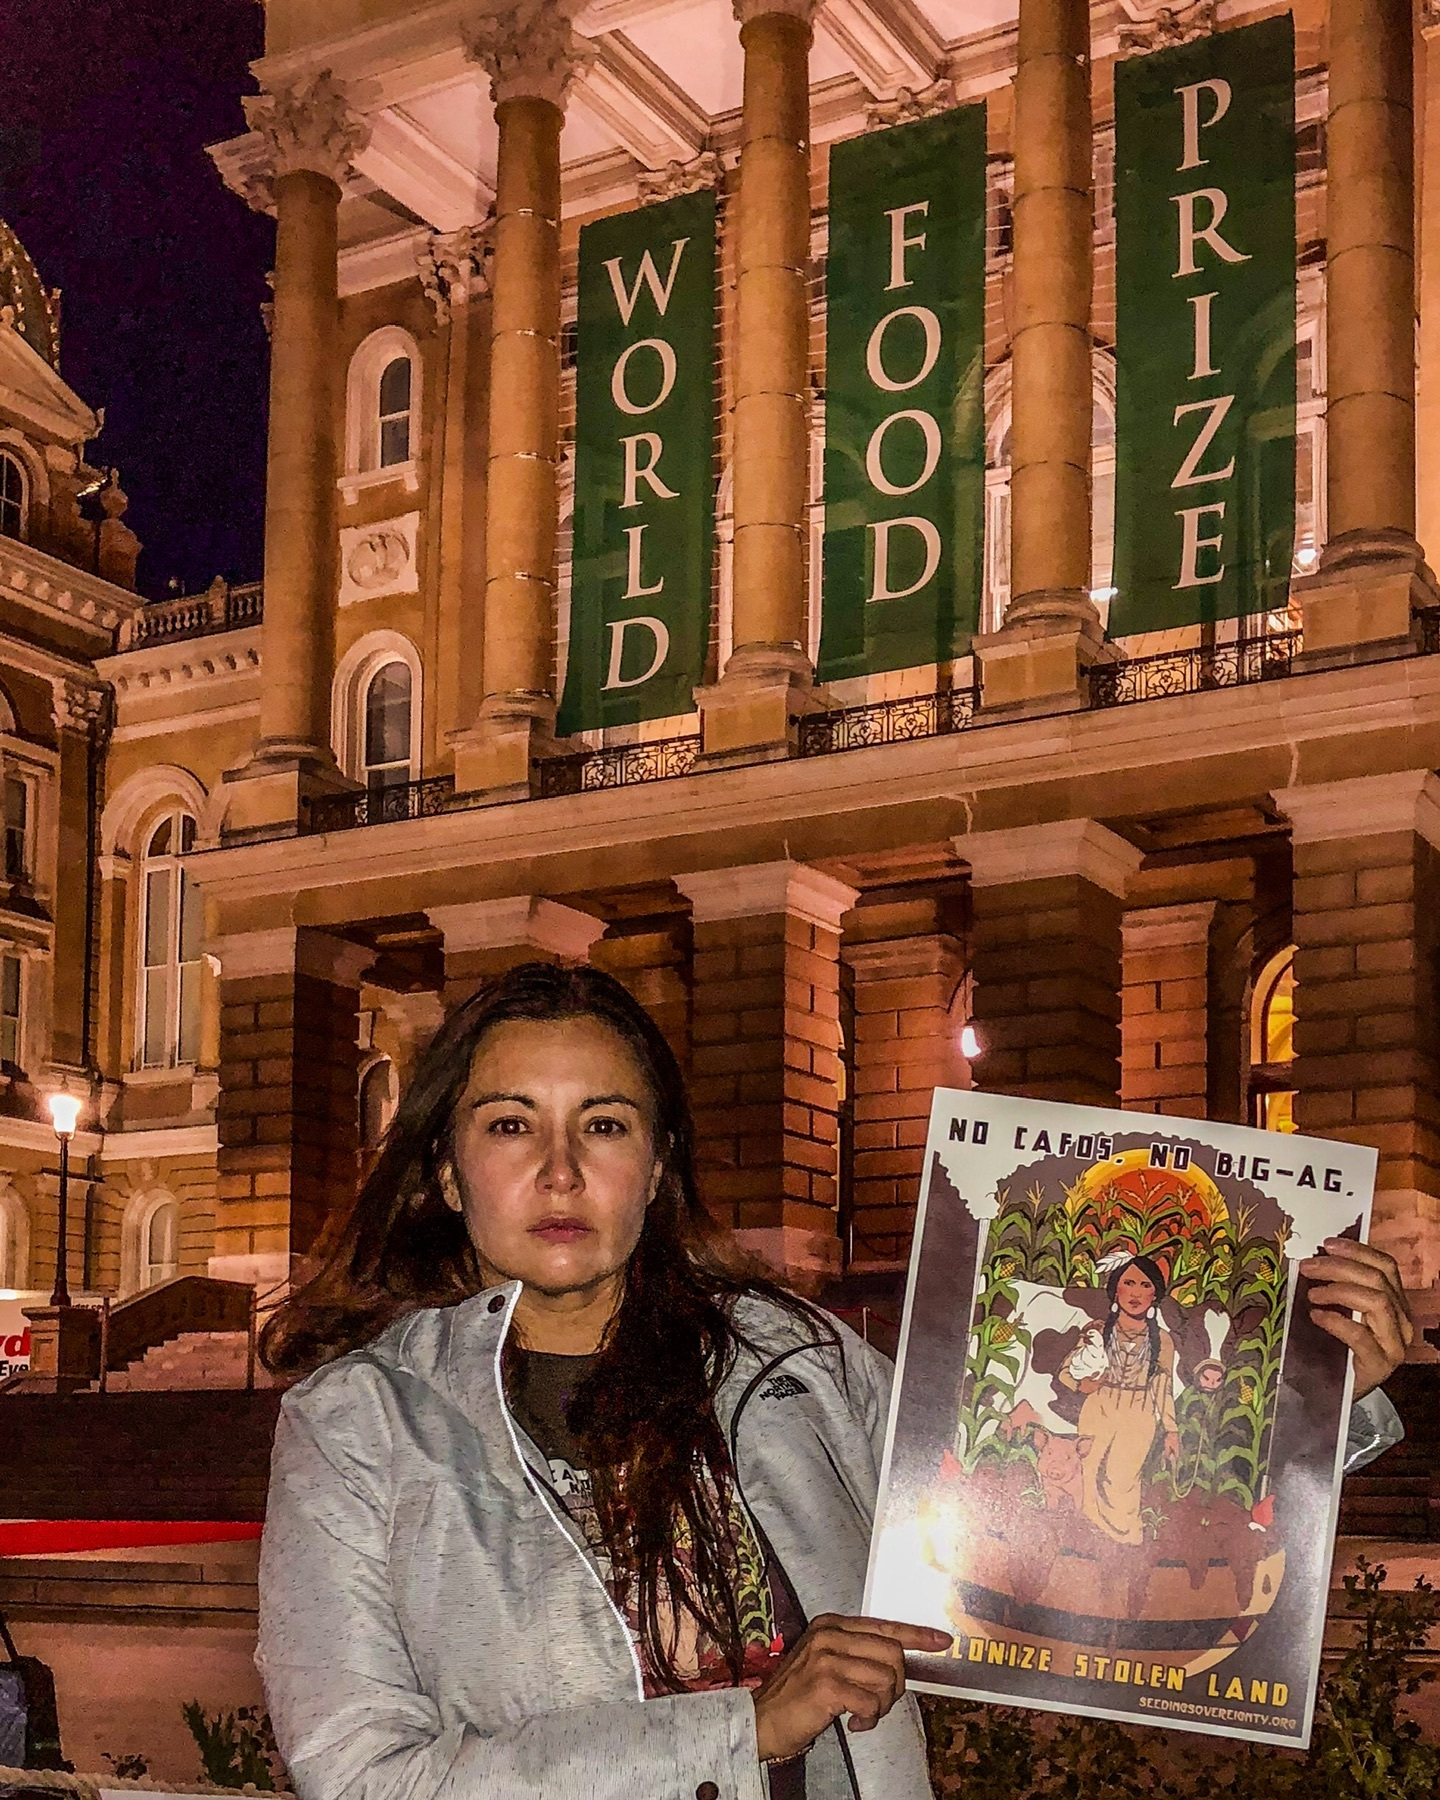 During the World Food Prize in Des Moines in October 2018, Christine spoke at a protest alongside local organizers and farmers.